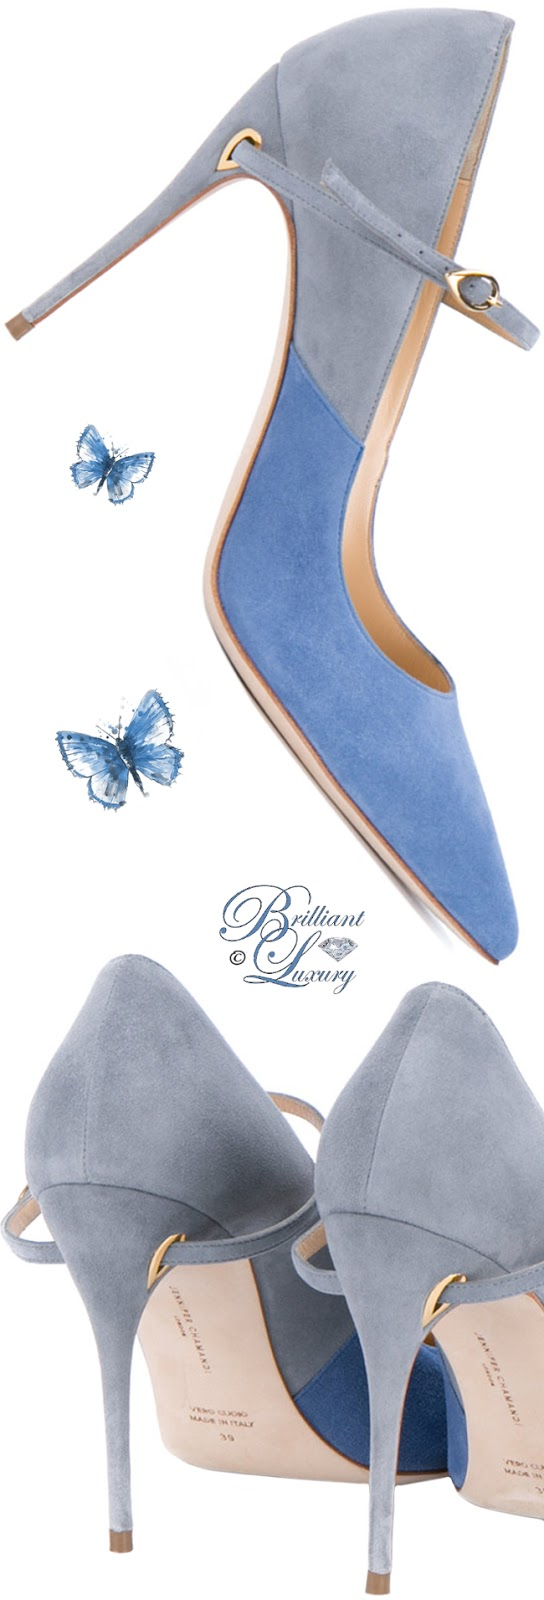 Brilliant Luxury ♦ Jennifer Chamandi Lorenzo Pumps